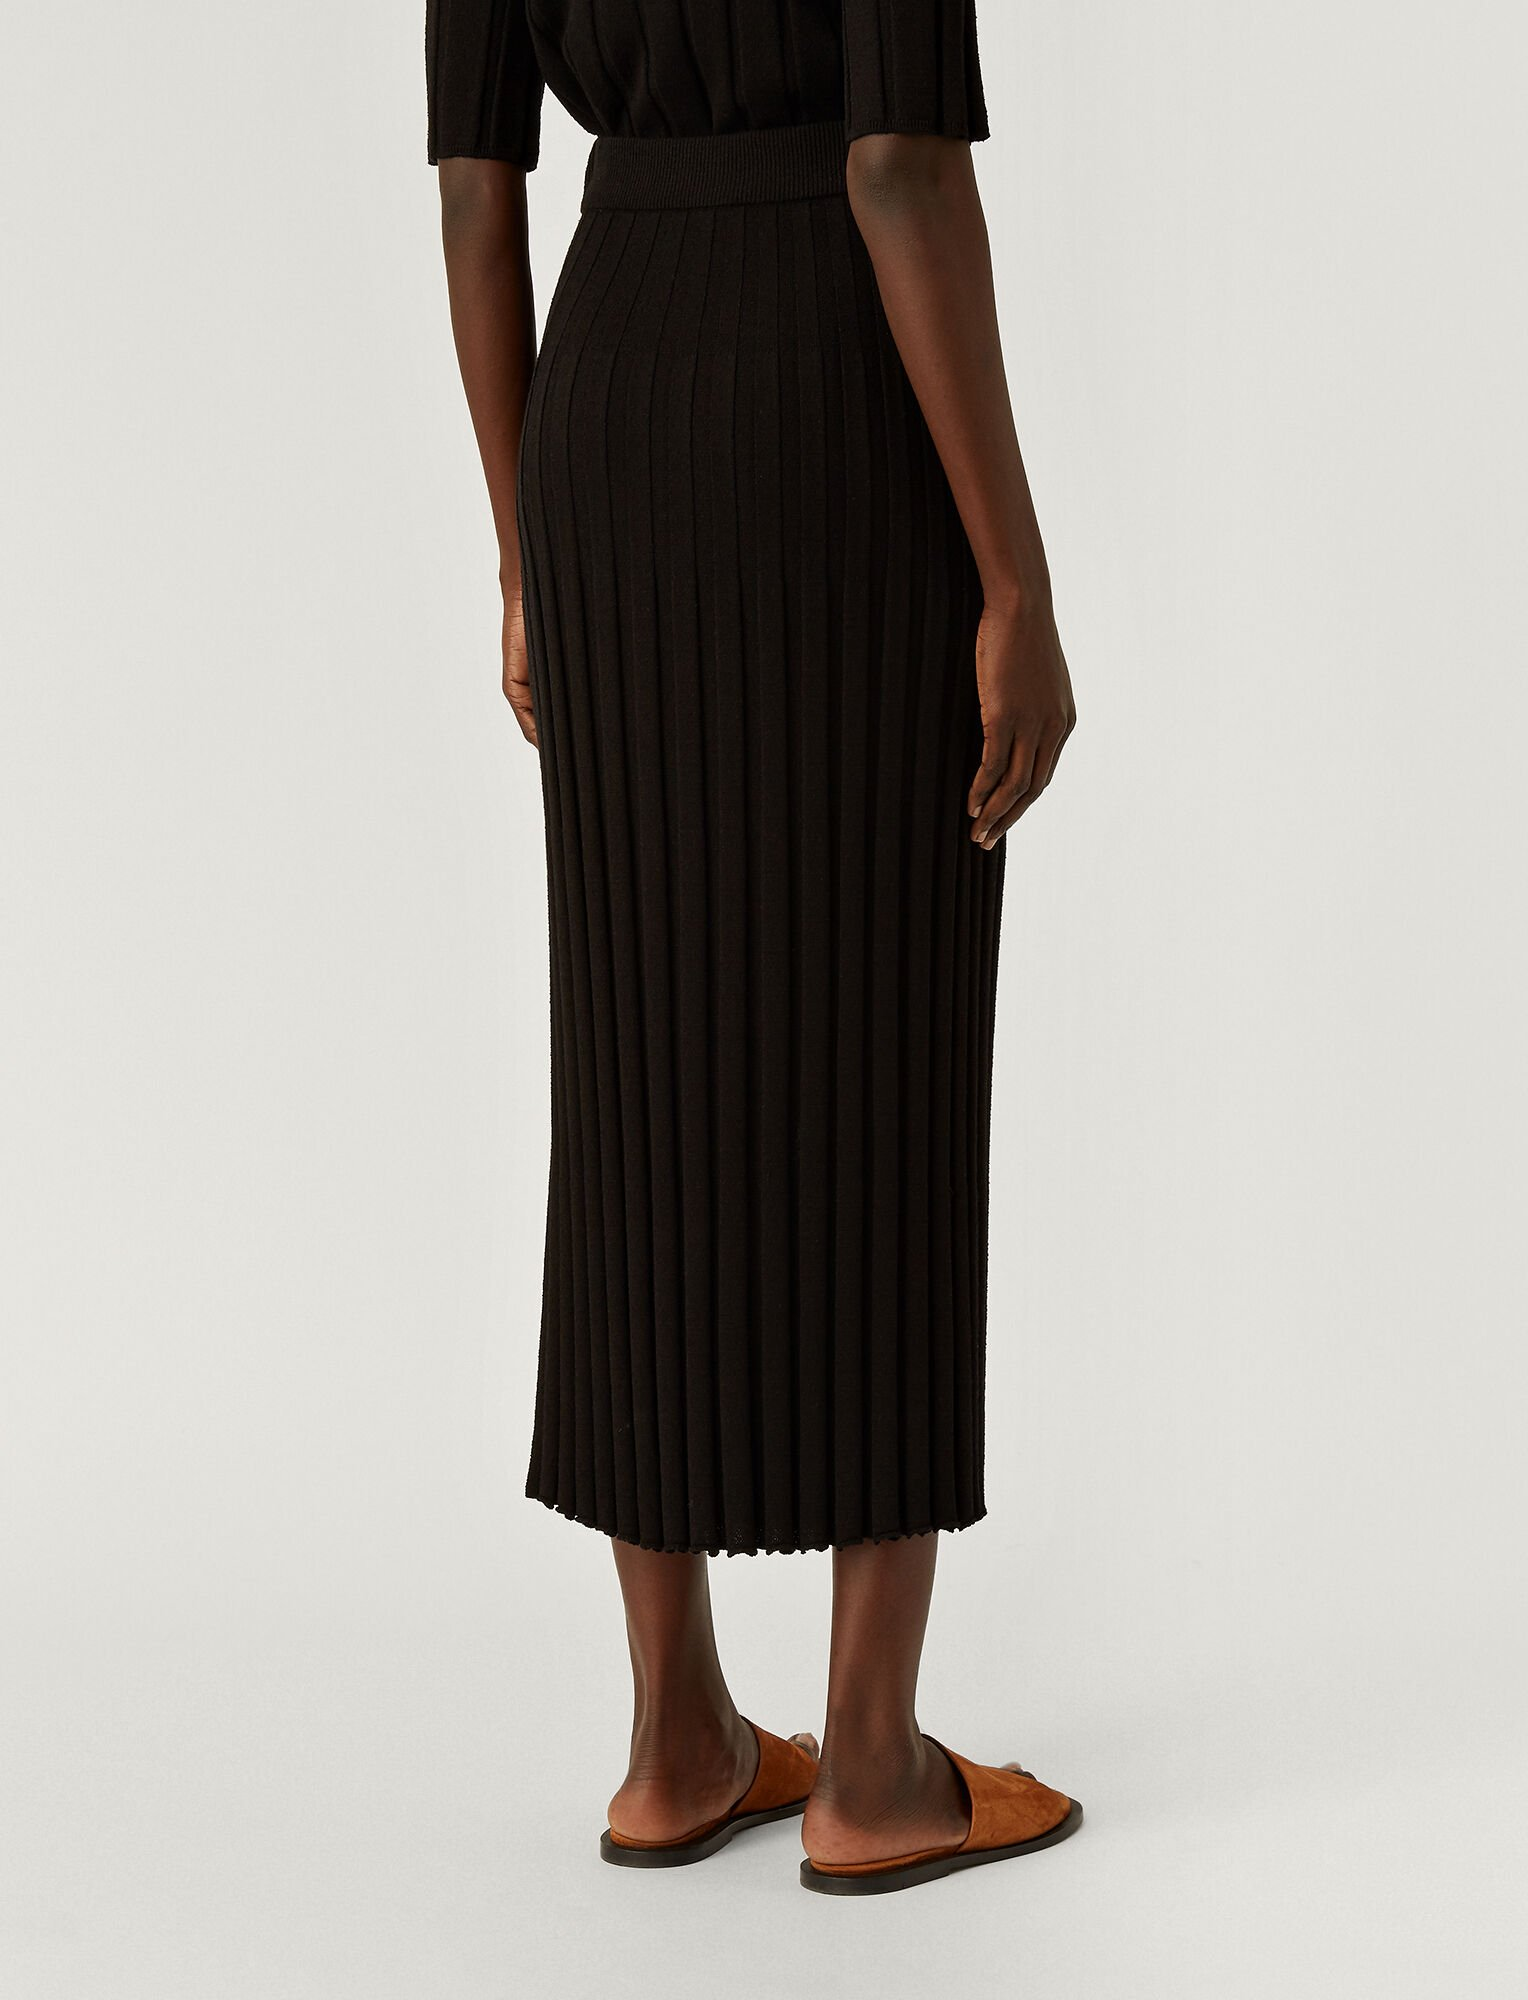 Joseph, Textured Rib Skirt, in BLACK